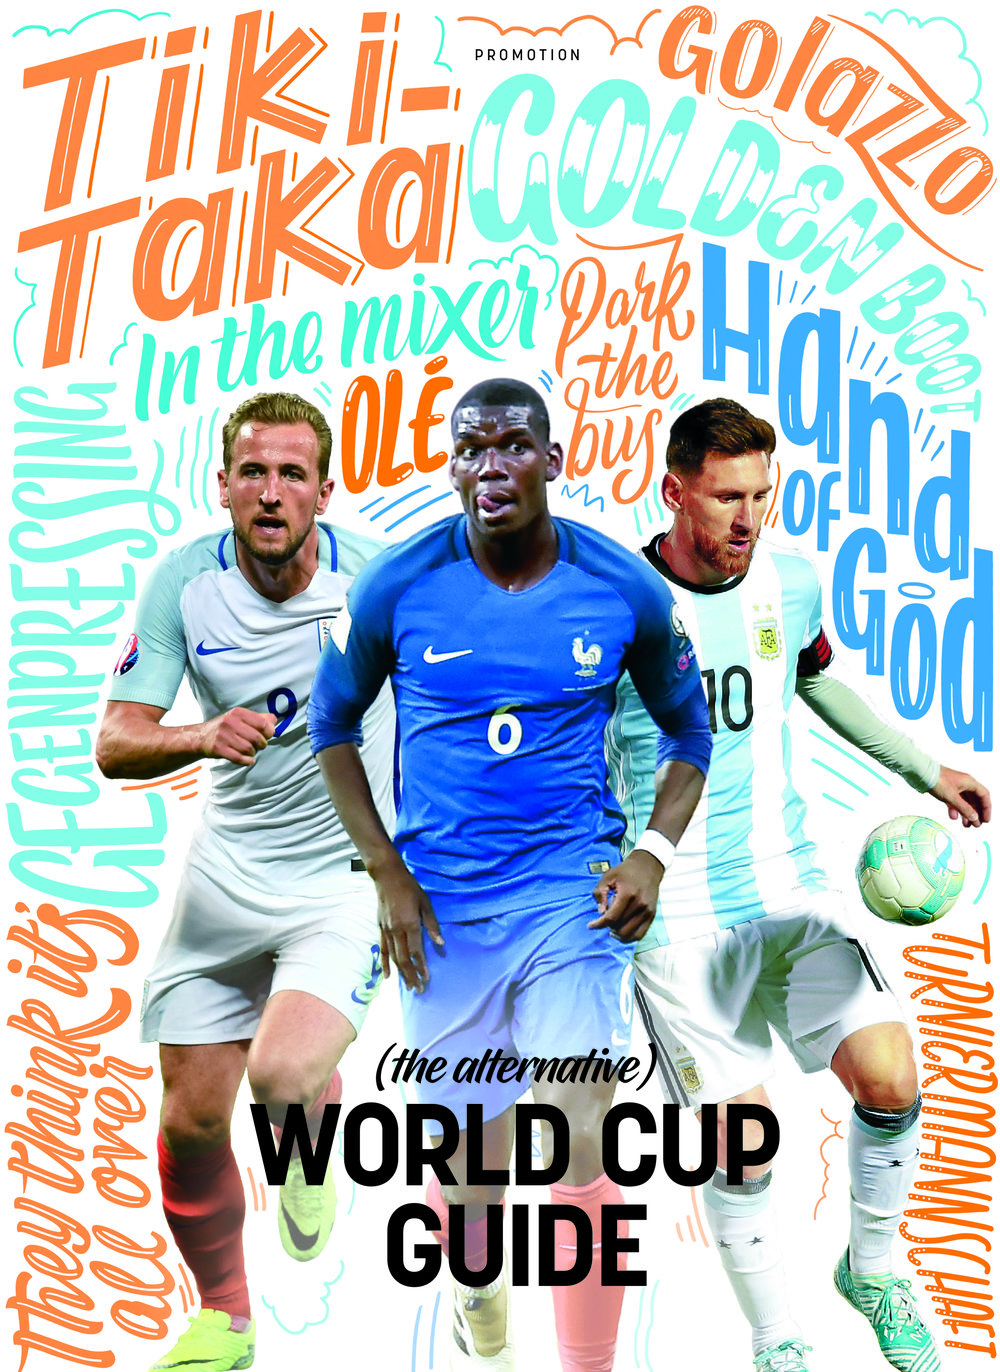 EJ_June_World cup_cover.jpg